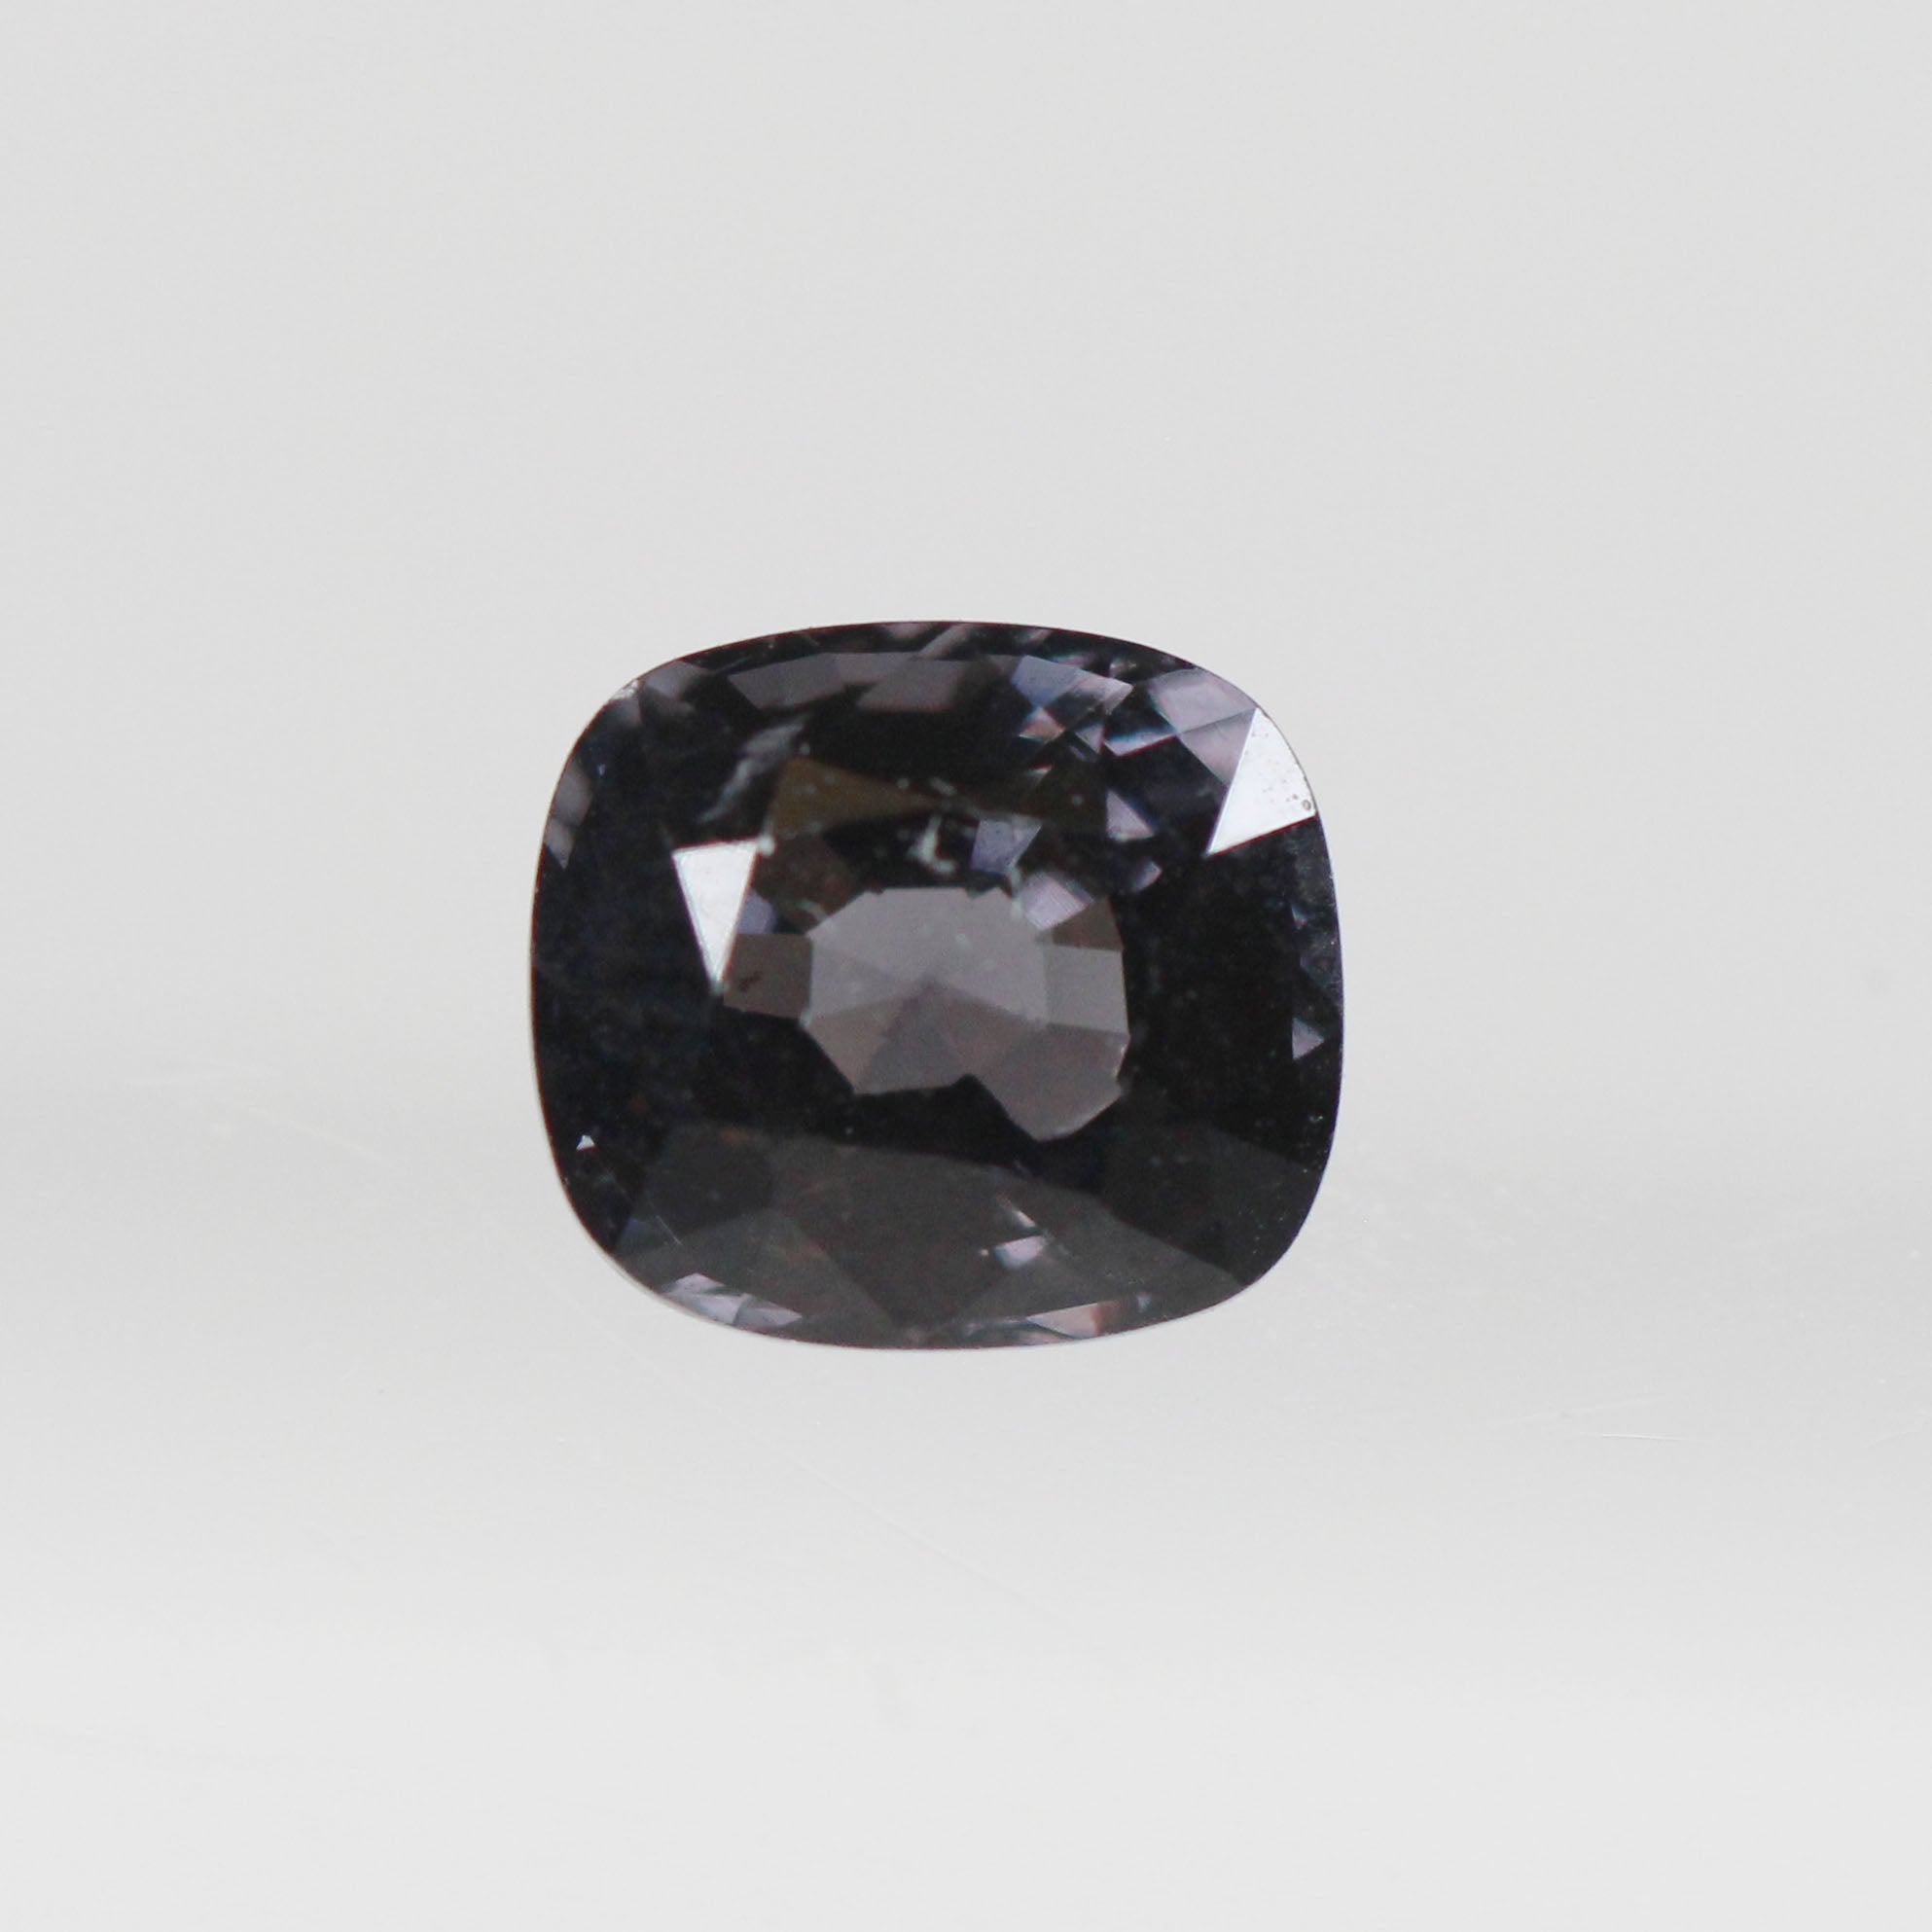 1.41 Carat Cushion Spinel for Custom Work - Inventory Code CBSP141 - Celestial Diamonds ® by Midwinter Co.